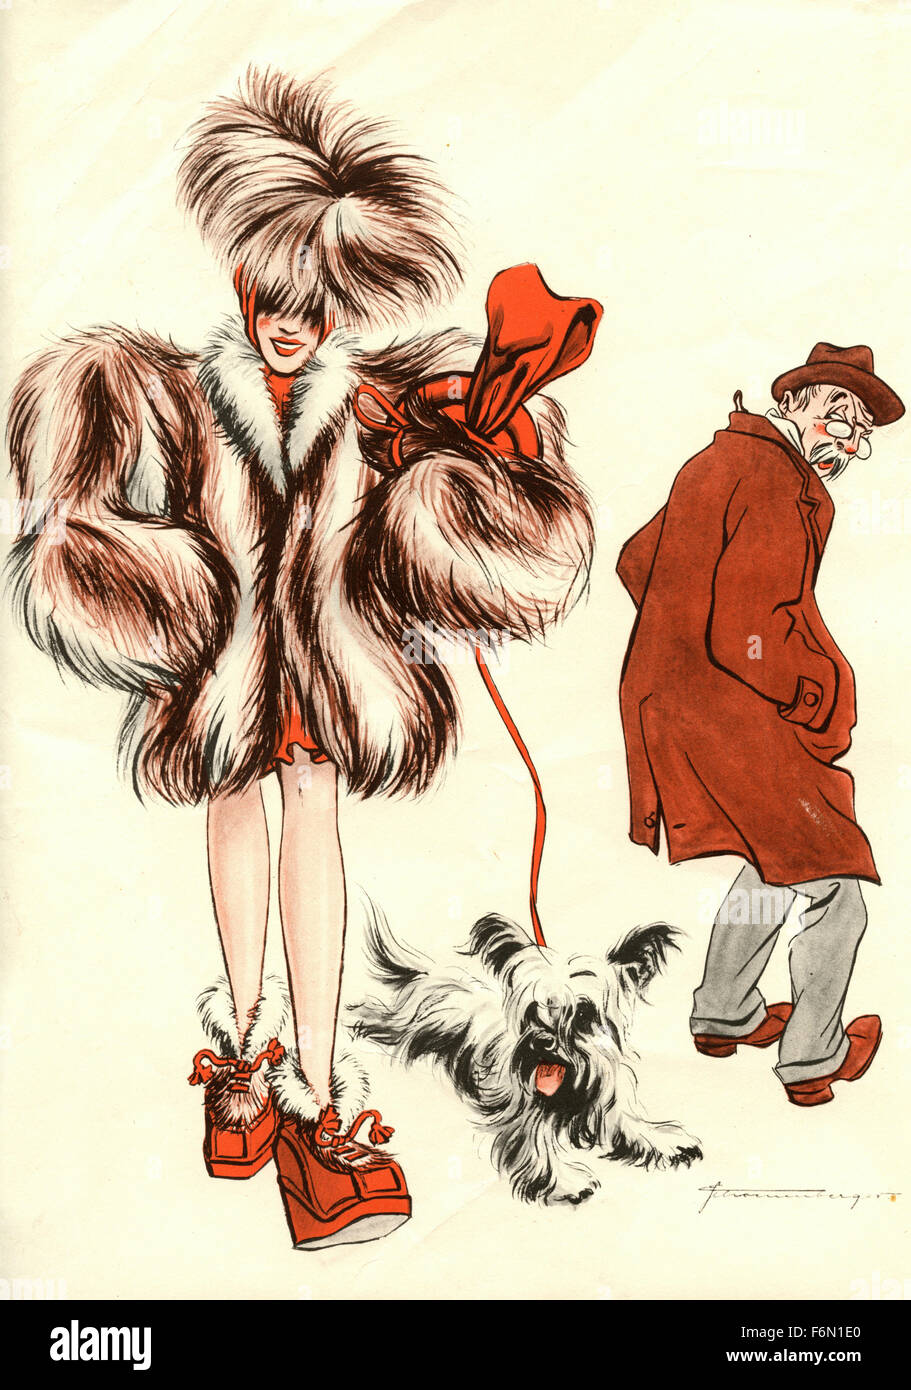 German satirical illustrations 1950: A woman with a dog - Stock Image